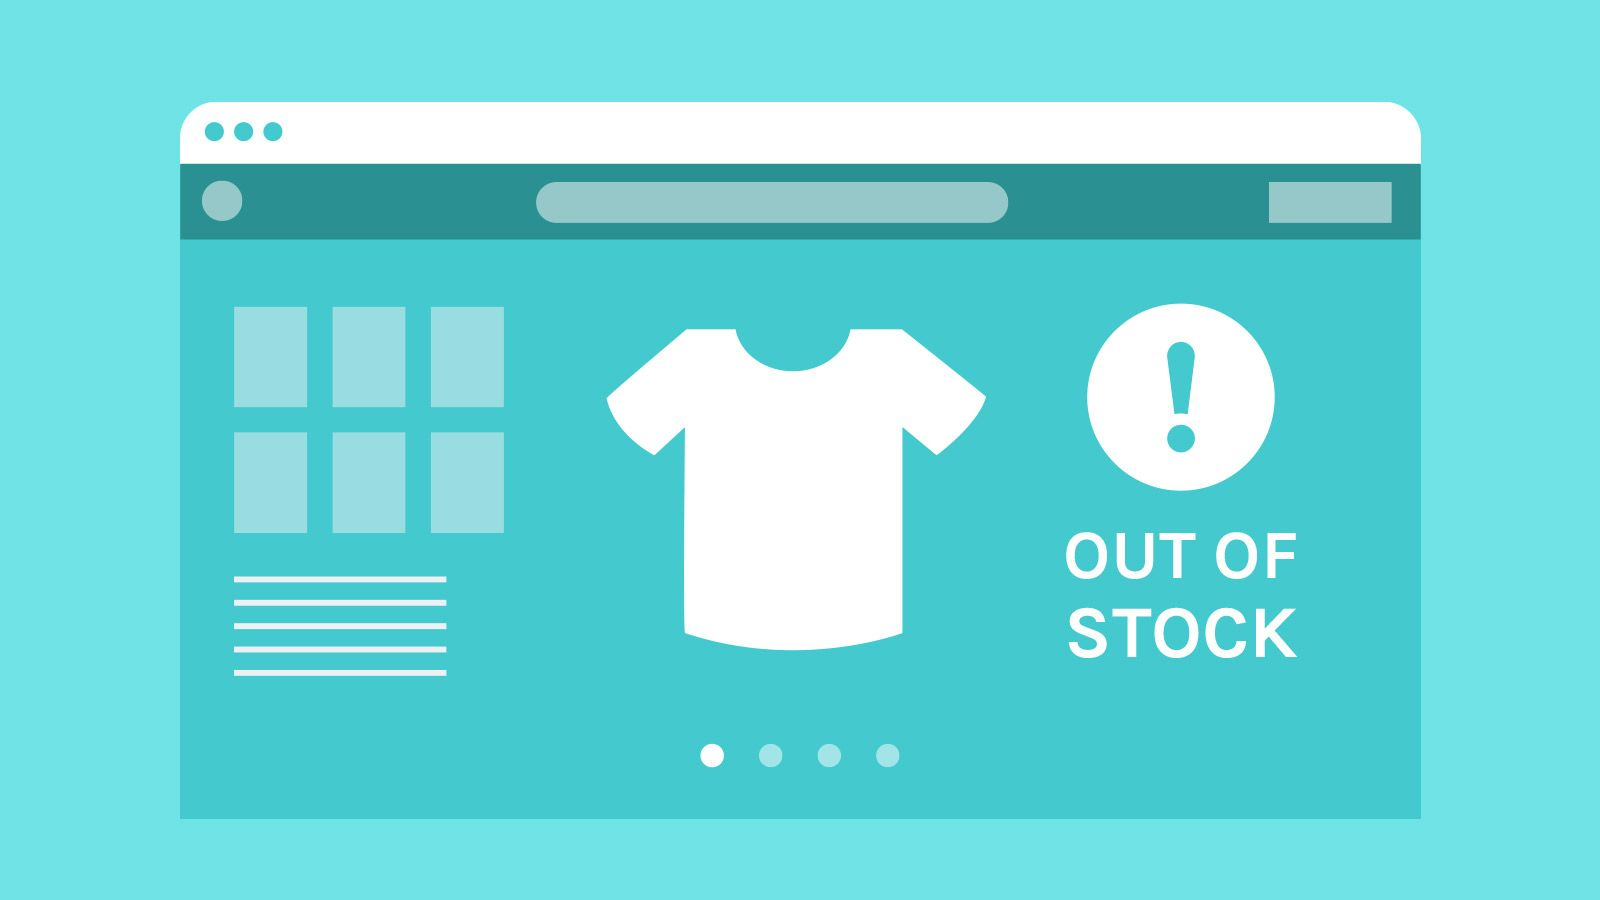 10 Tips to Deal with Out-of-Stock Product Pages